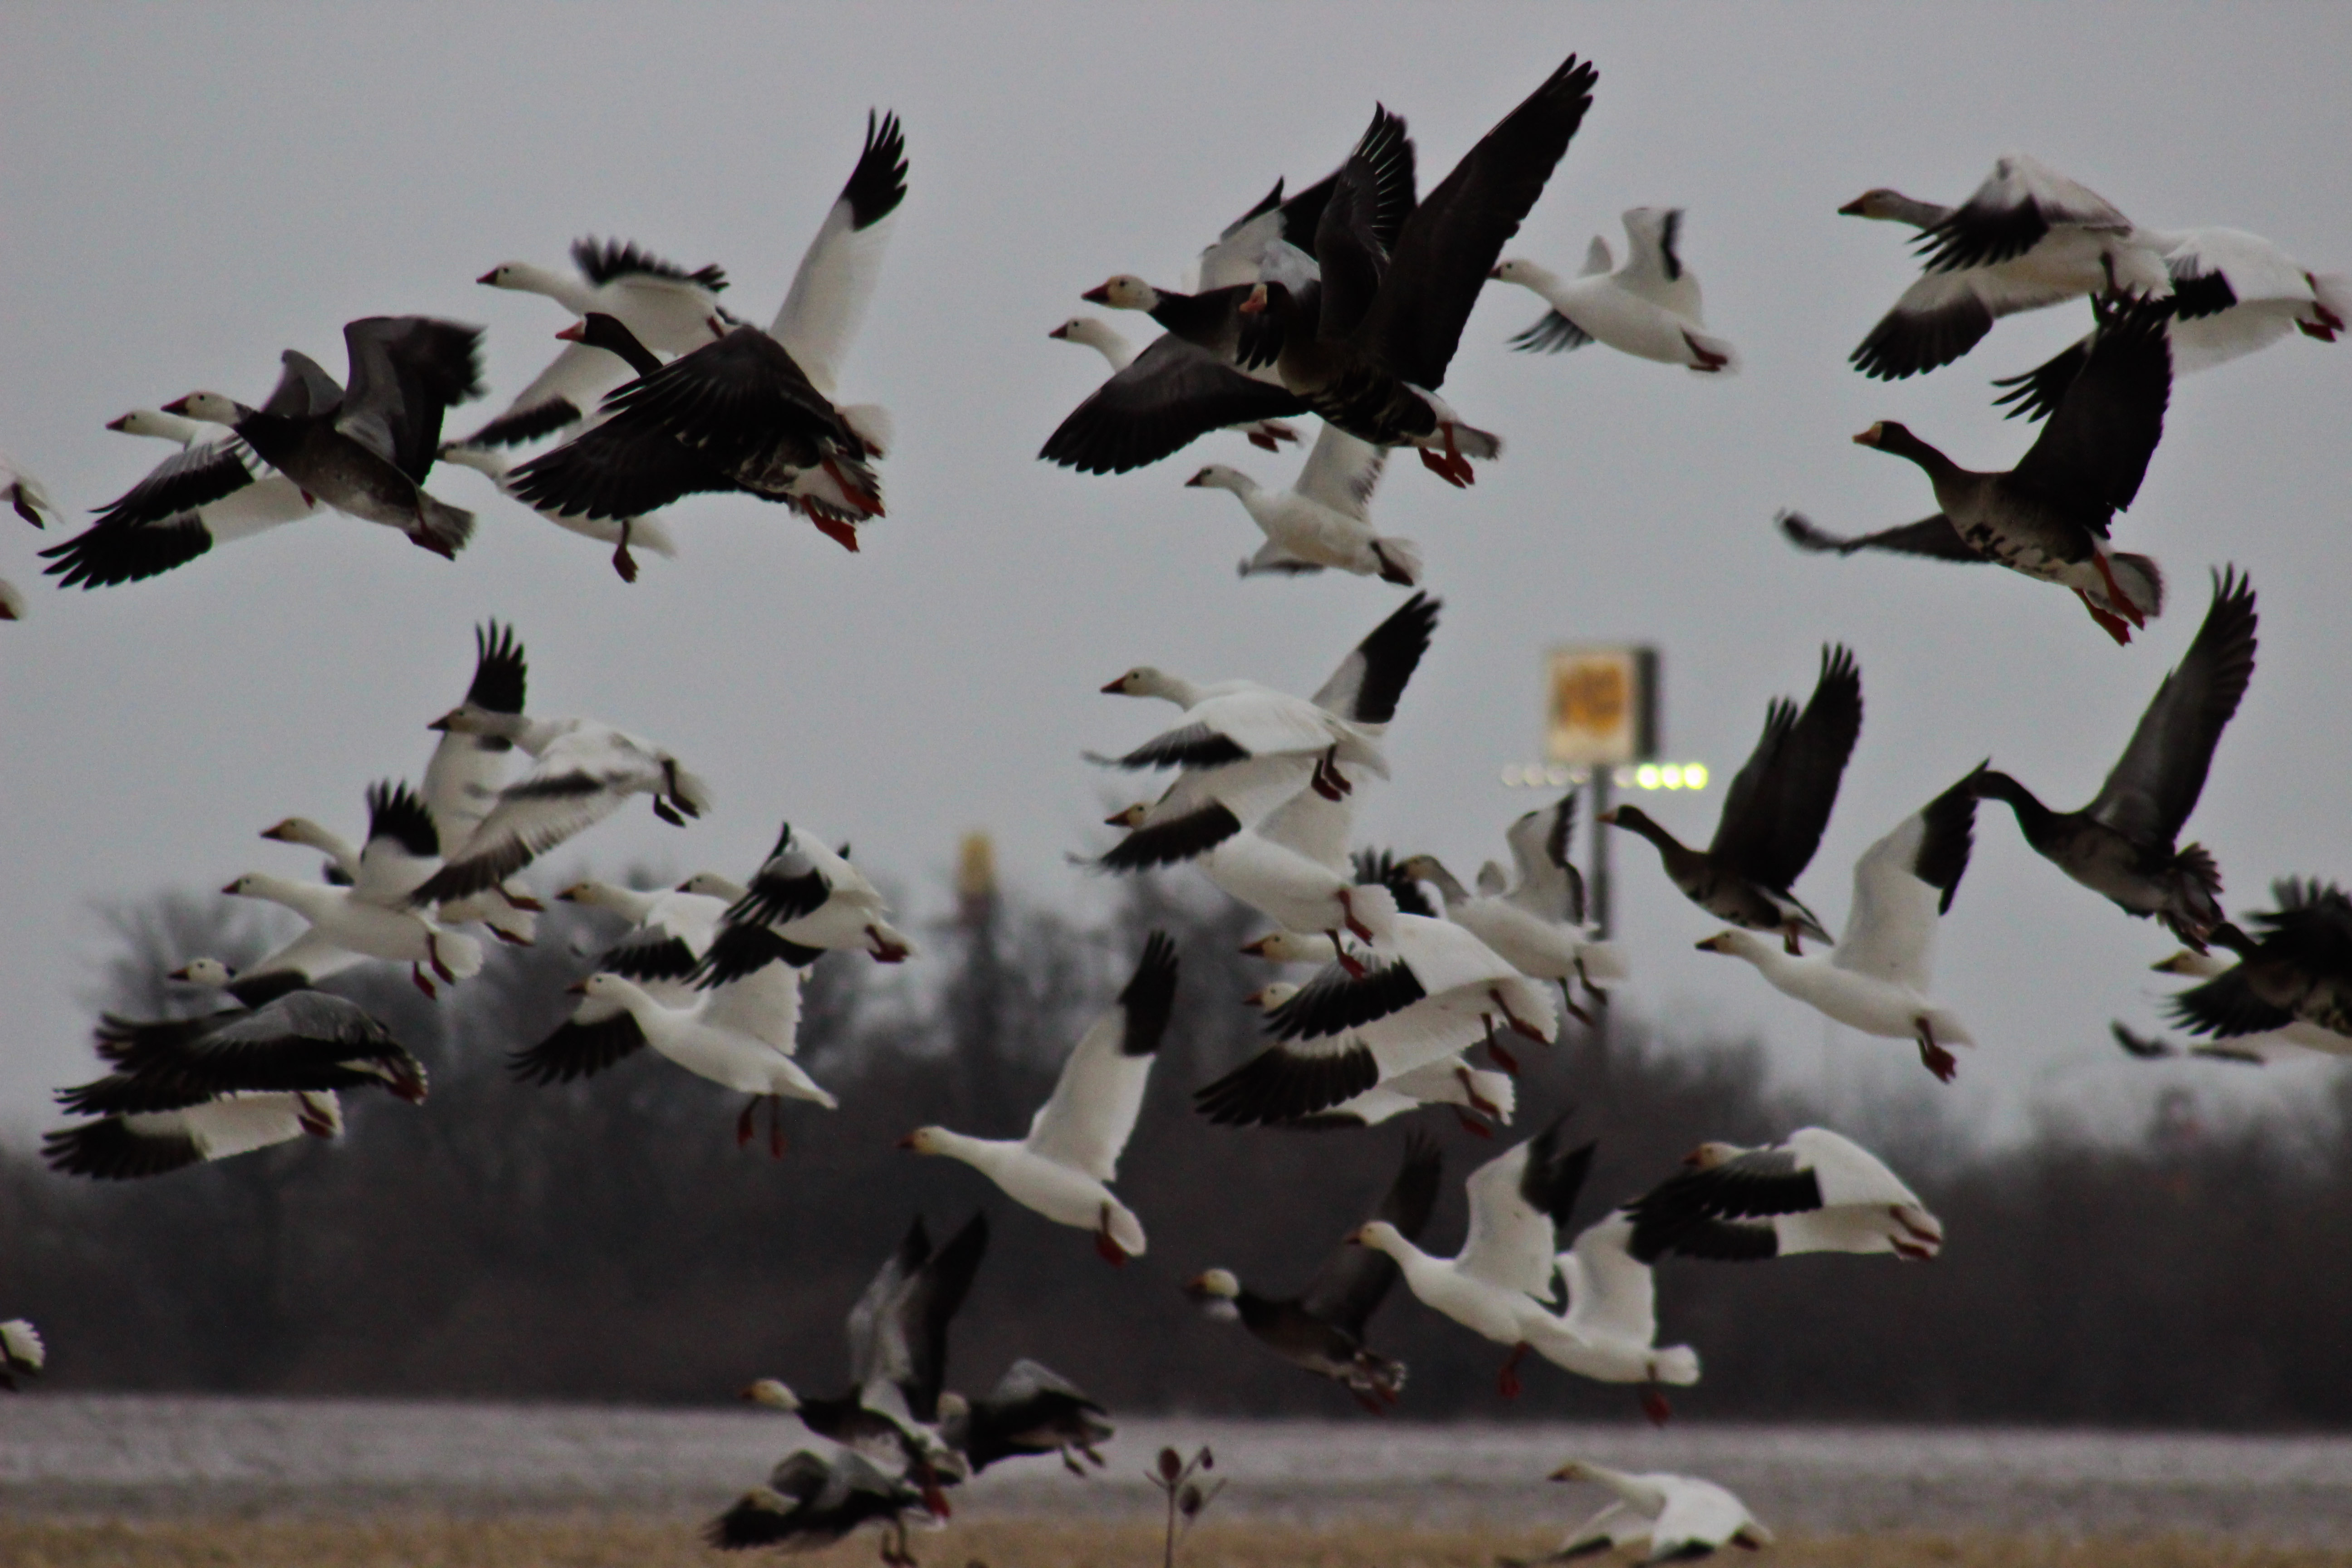 Snow Goose Migration Update – March 3, 2015